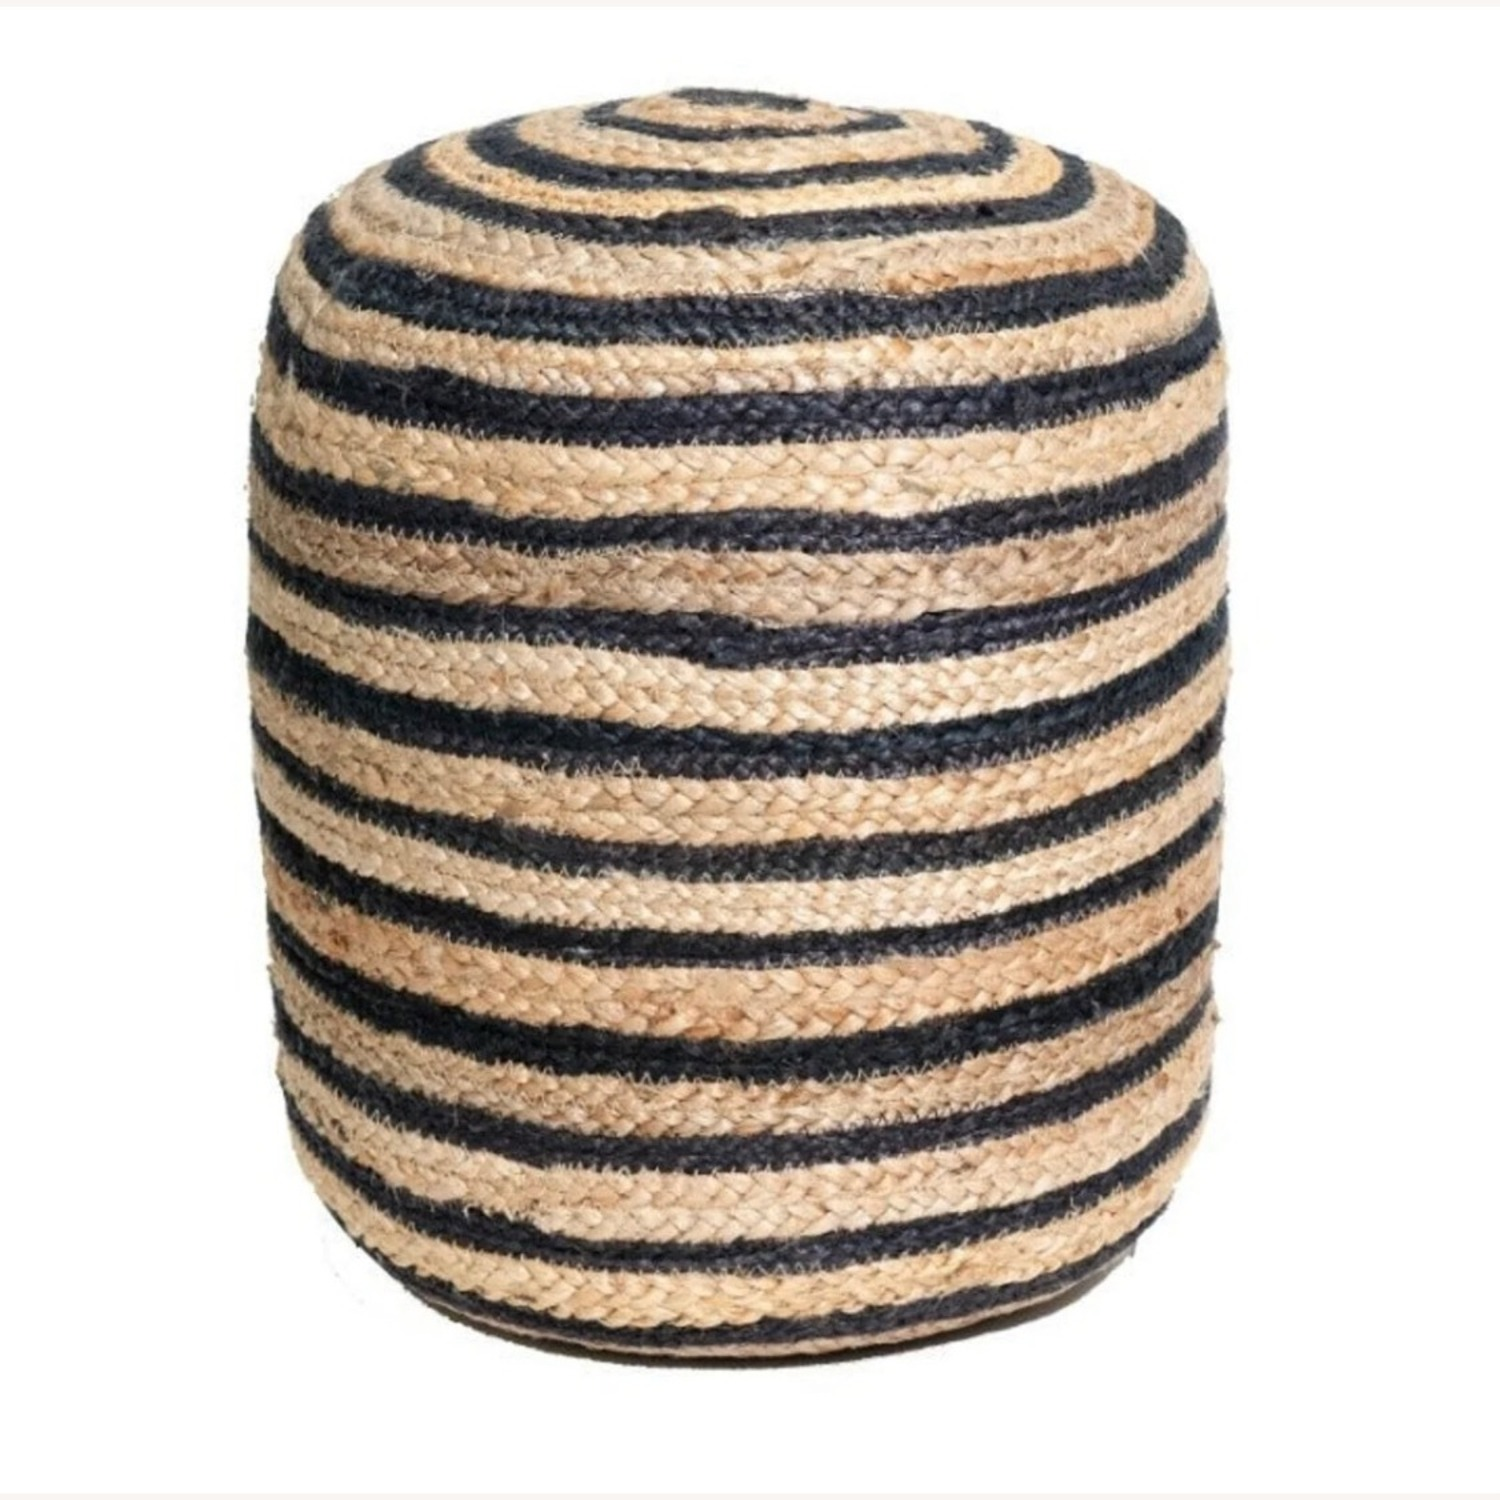 Hand Made Jutee Braided Multi-Coloured Pouf - image-2